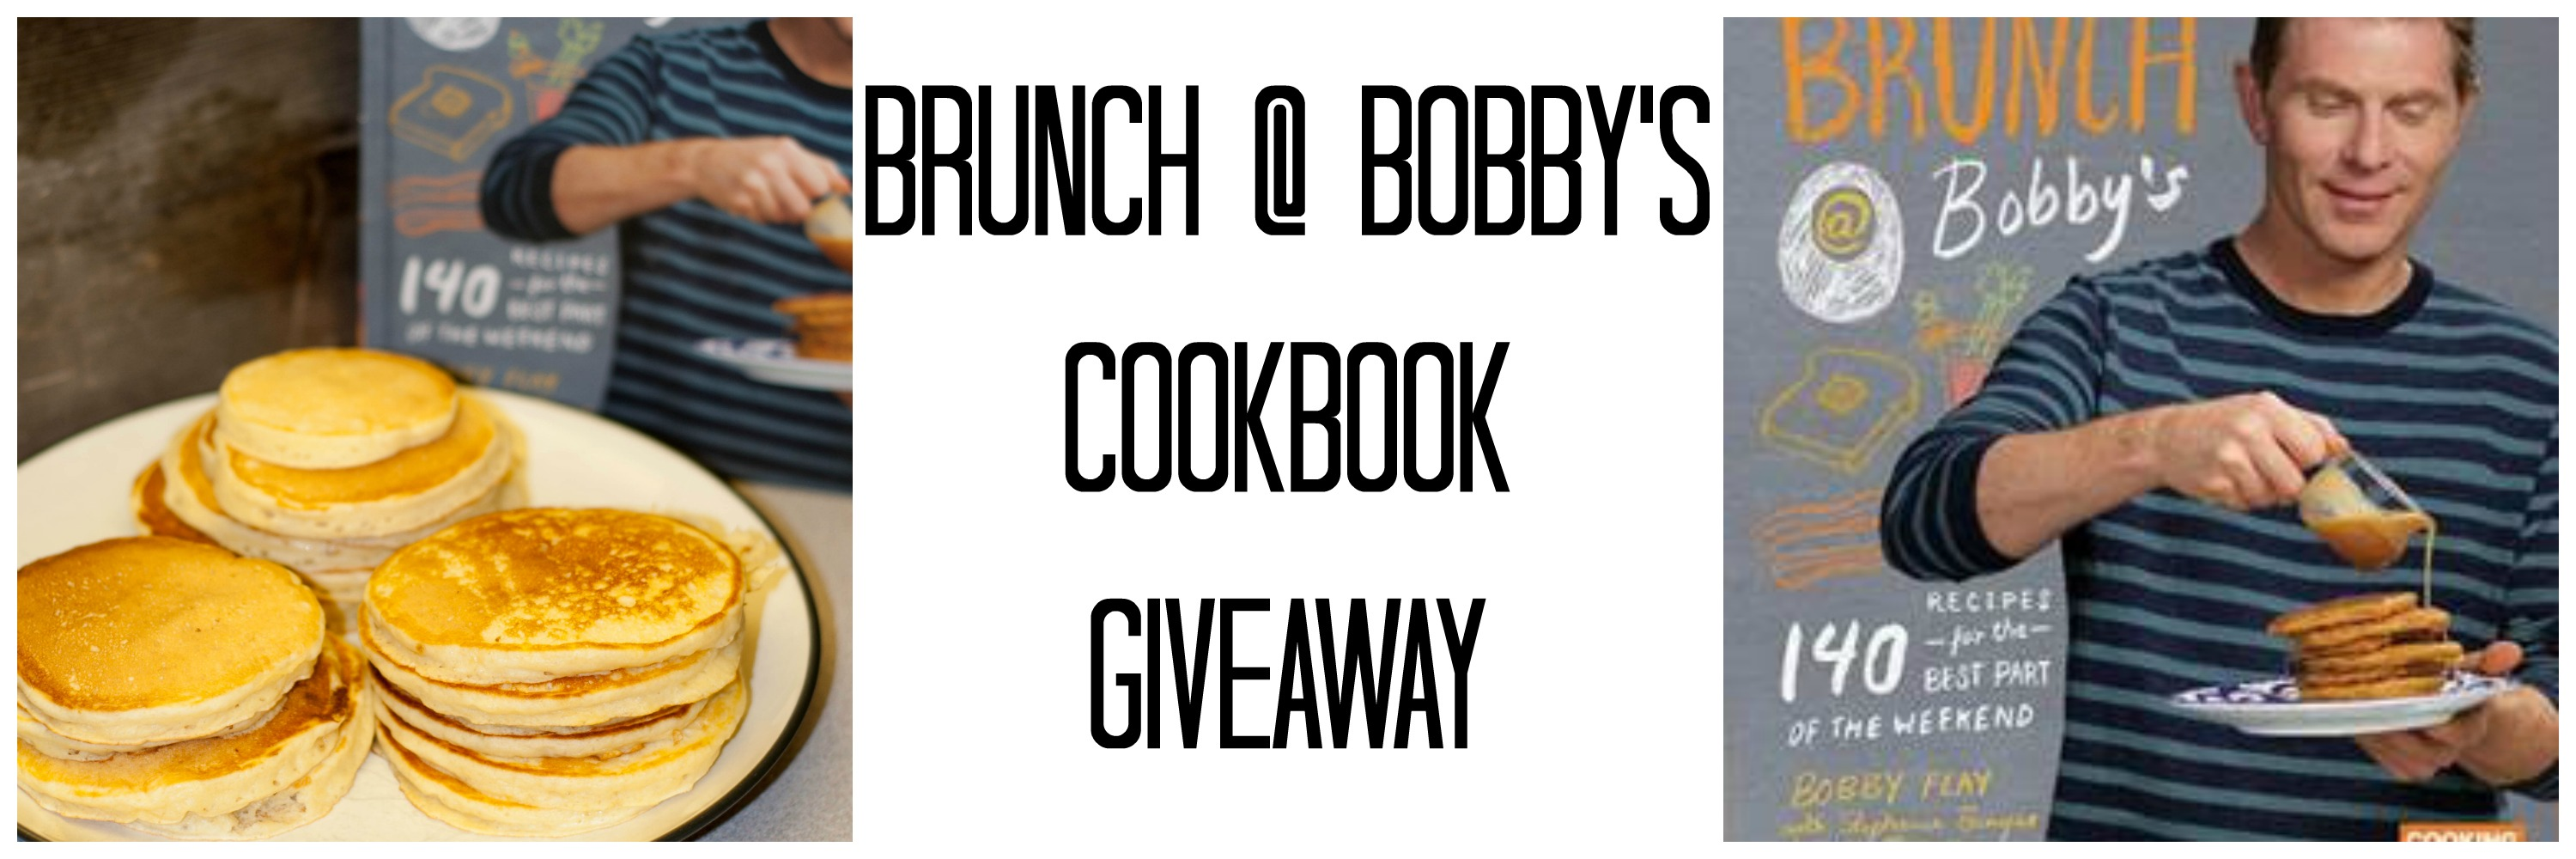 Brunch @ Bobby's Cookbook Giveaway – Win 3 Bobby Flay Cookbooks